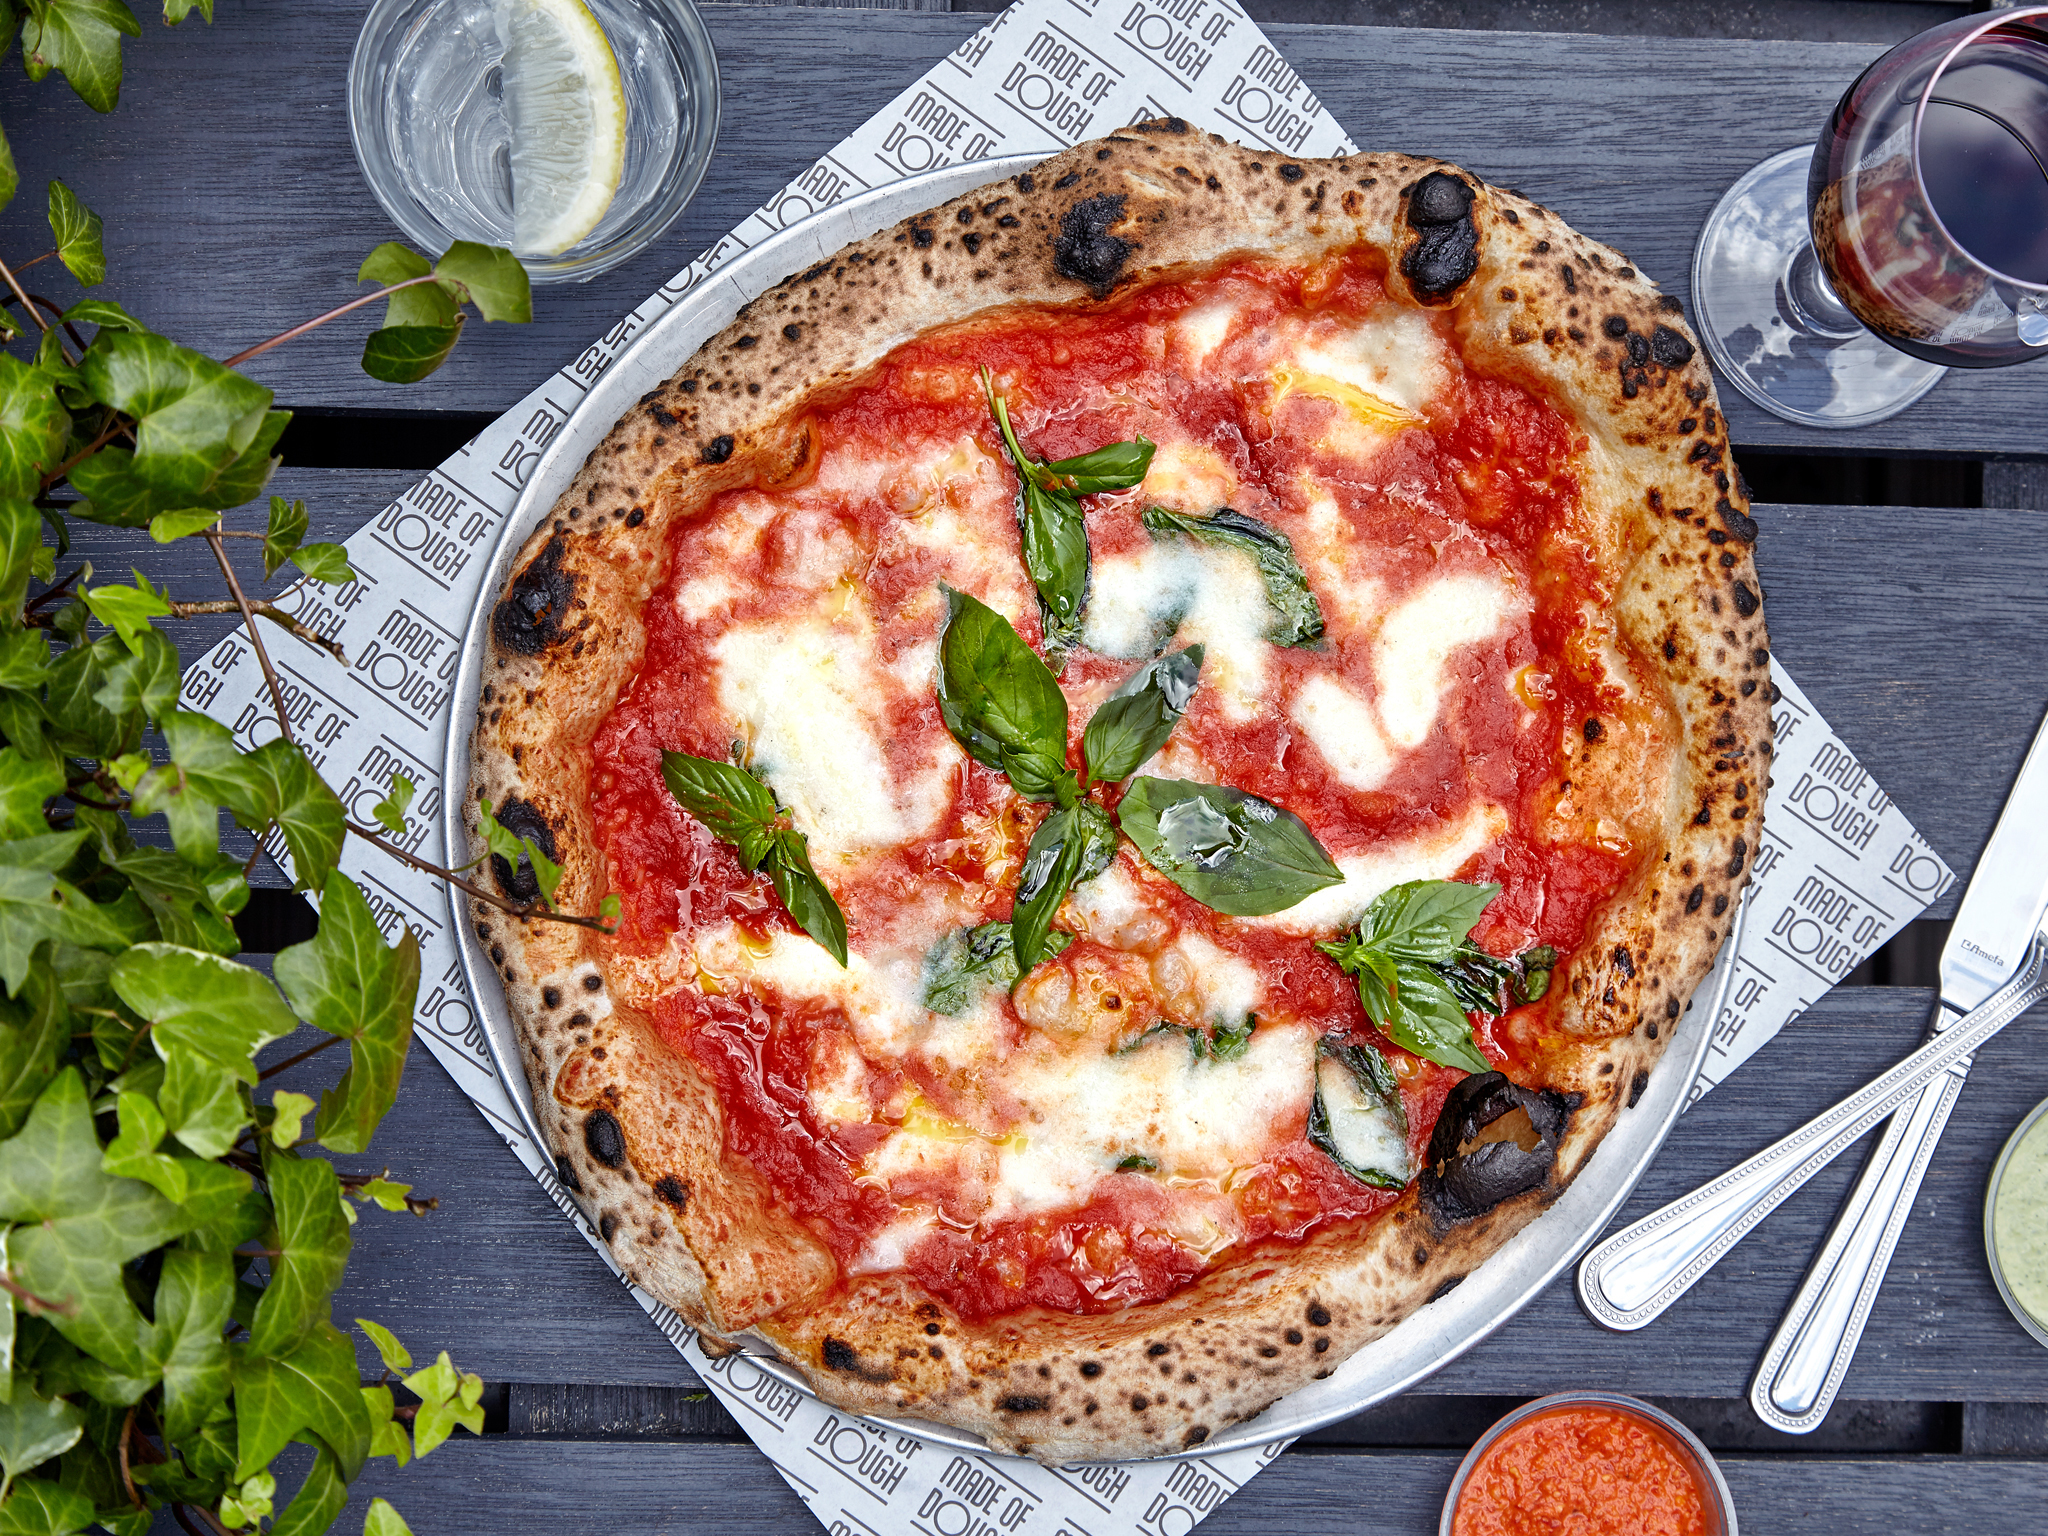 The best pizza takeaways for delivery in London